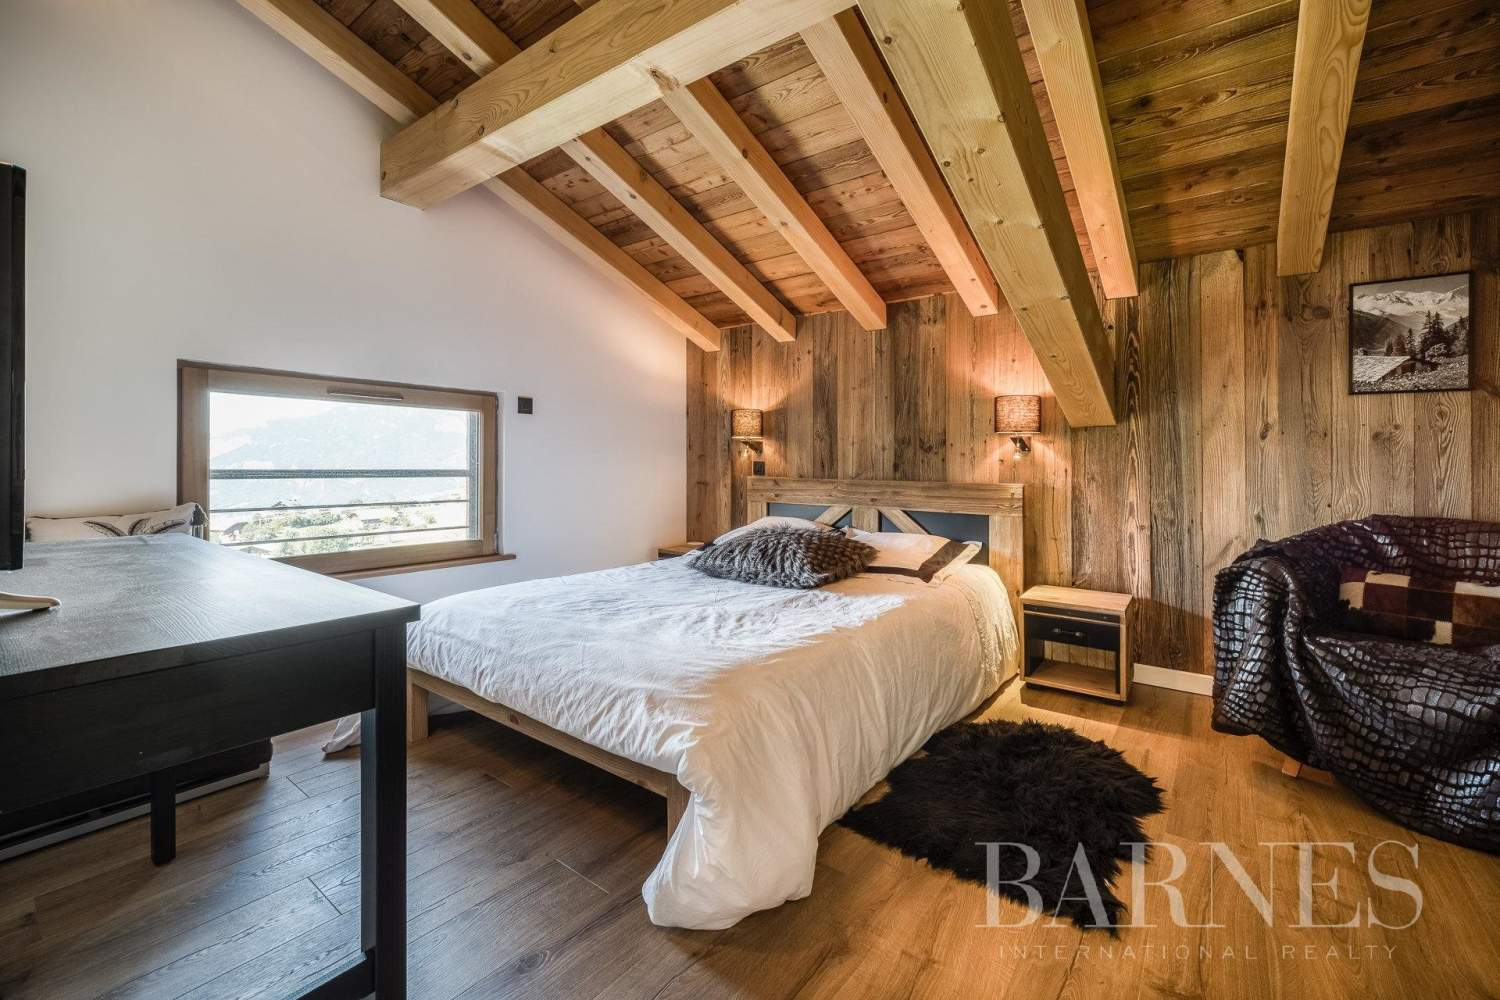 Exclusive to Barnes - Stunning ski-in chalet situated on La Princesse ski slopes picture 8